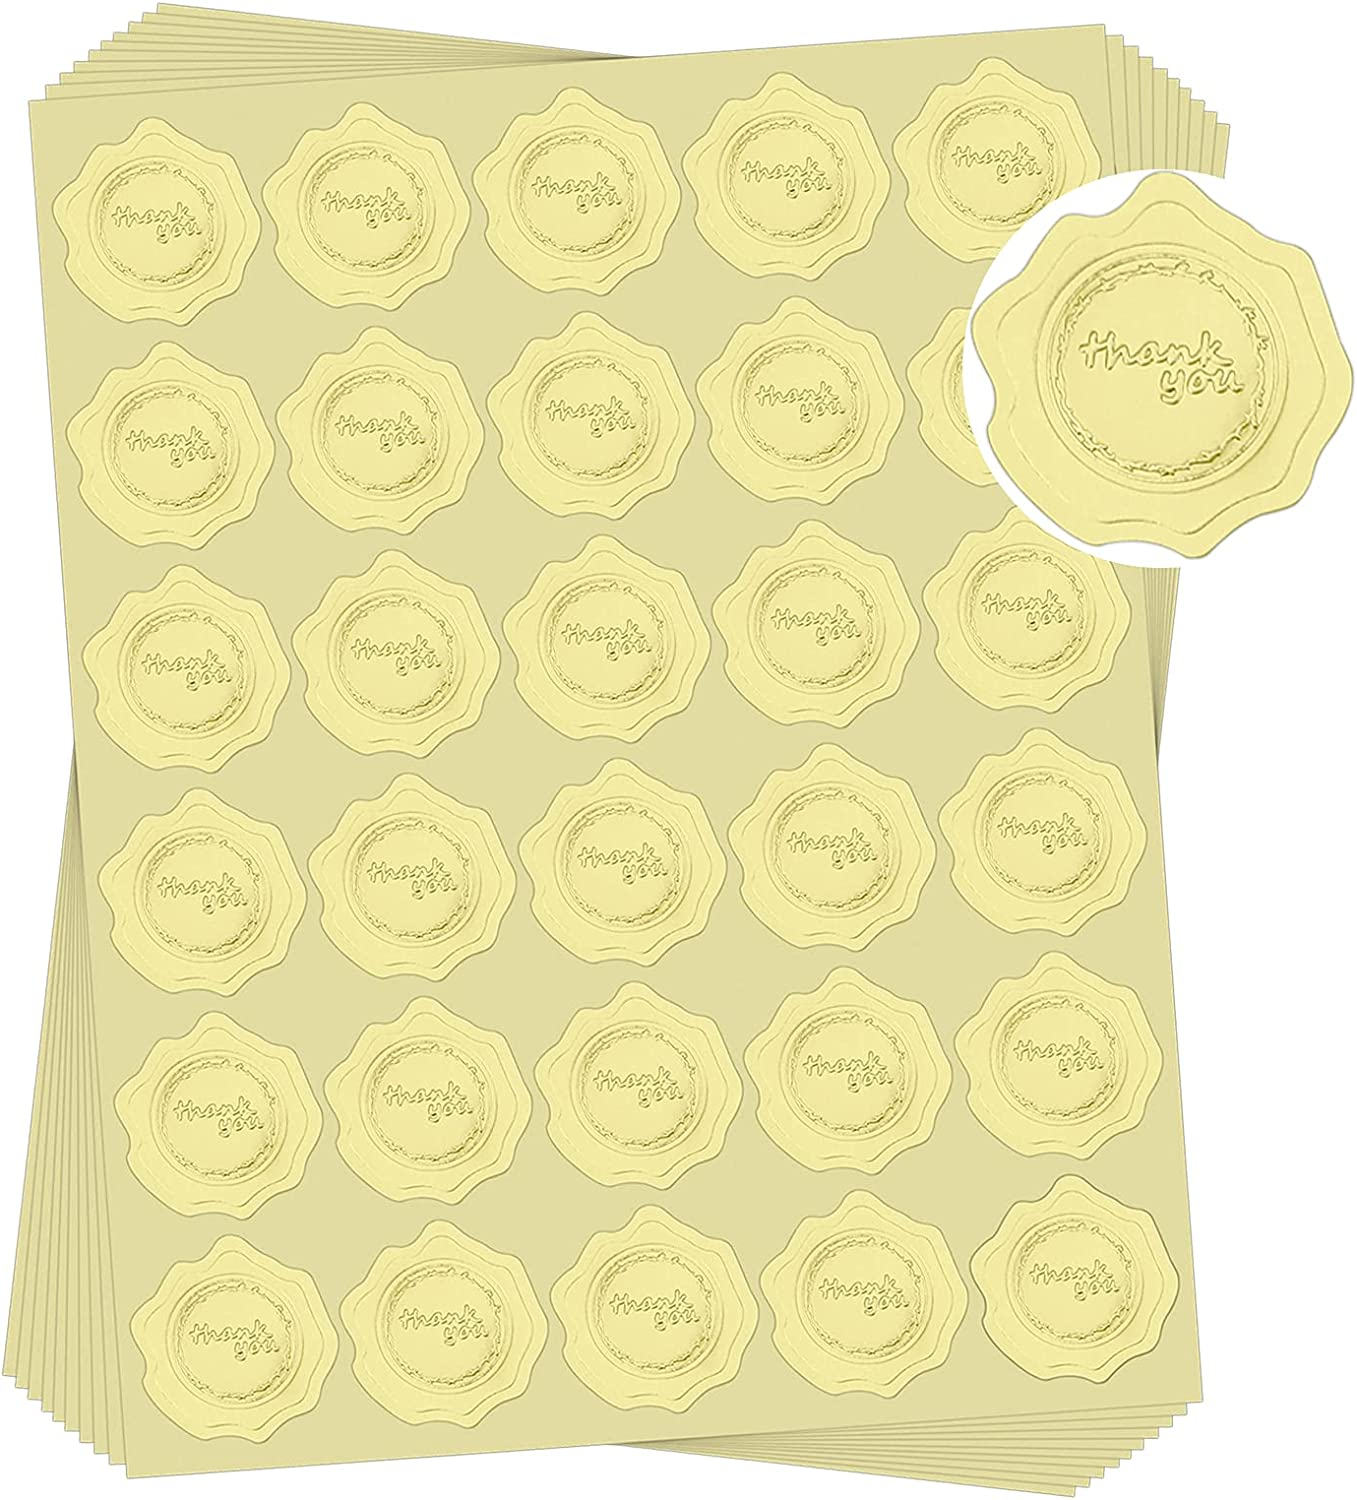 Ndsox 300pcs Thank You Gold Stickers Embossed Envelopes Seals Stickers for Wedding Invitations, Thanksgiving Day, Greeting Cards, Party Favors, Gift Packaging (Gold, Self-Adhesive)